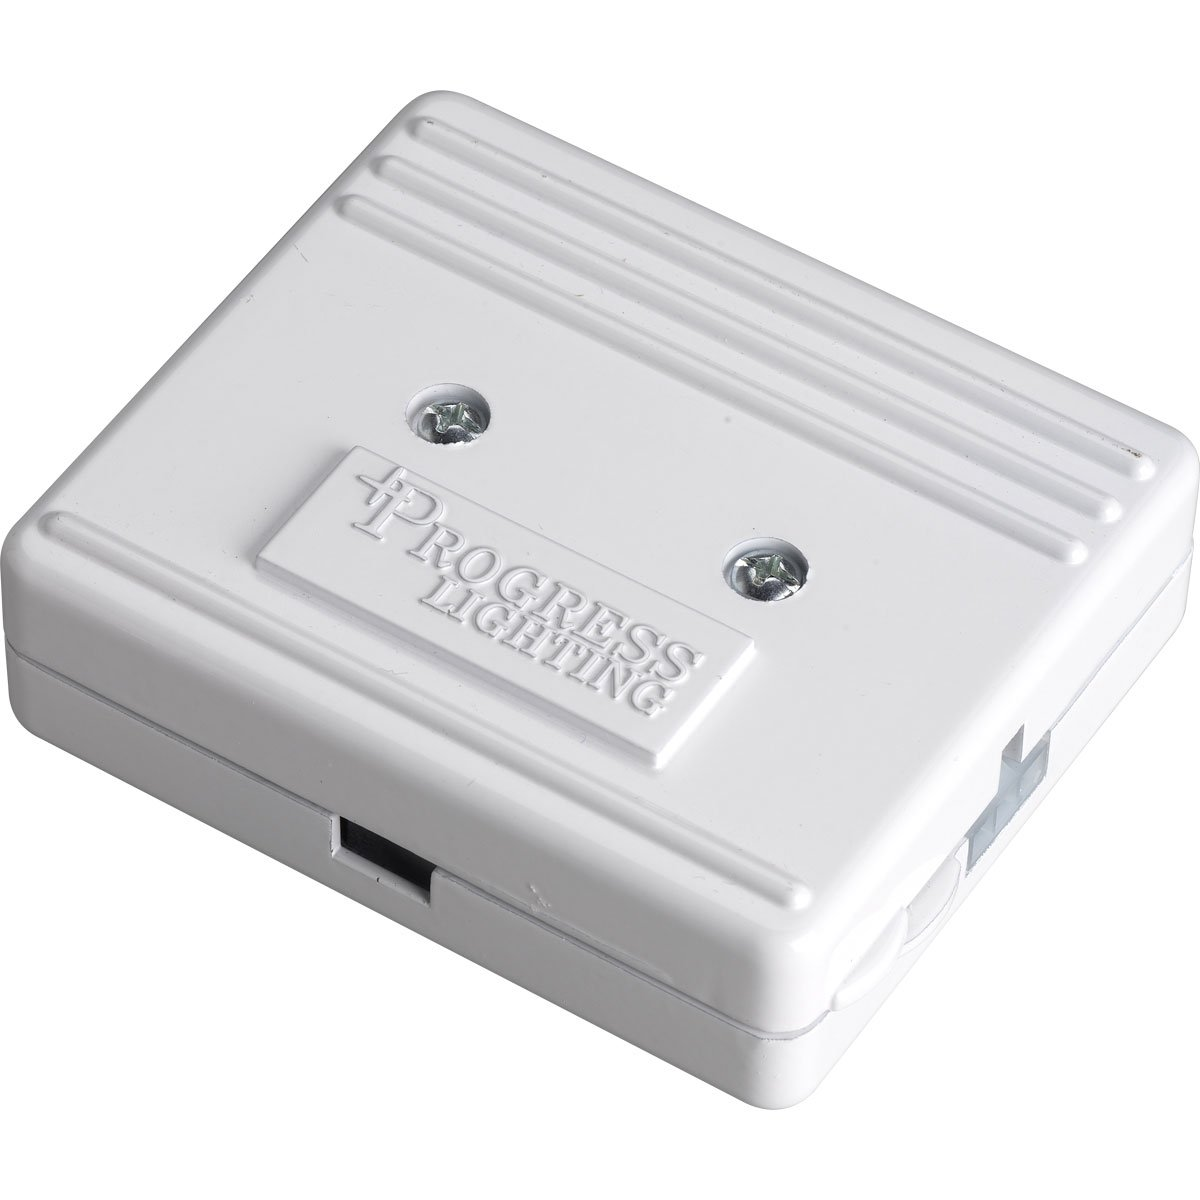 Progress Lighting P8740-30 HAL3 Junction Box Accepts Direct Covered Wire Wire Input and Provides Power For HAL3 Systems, White